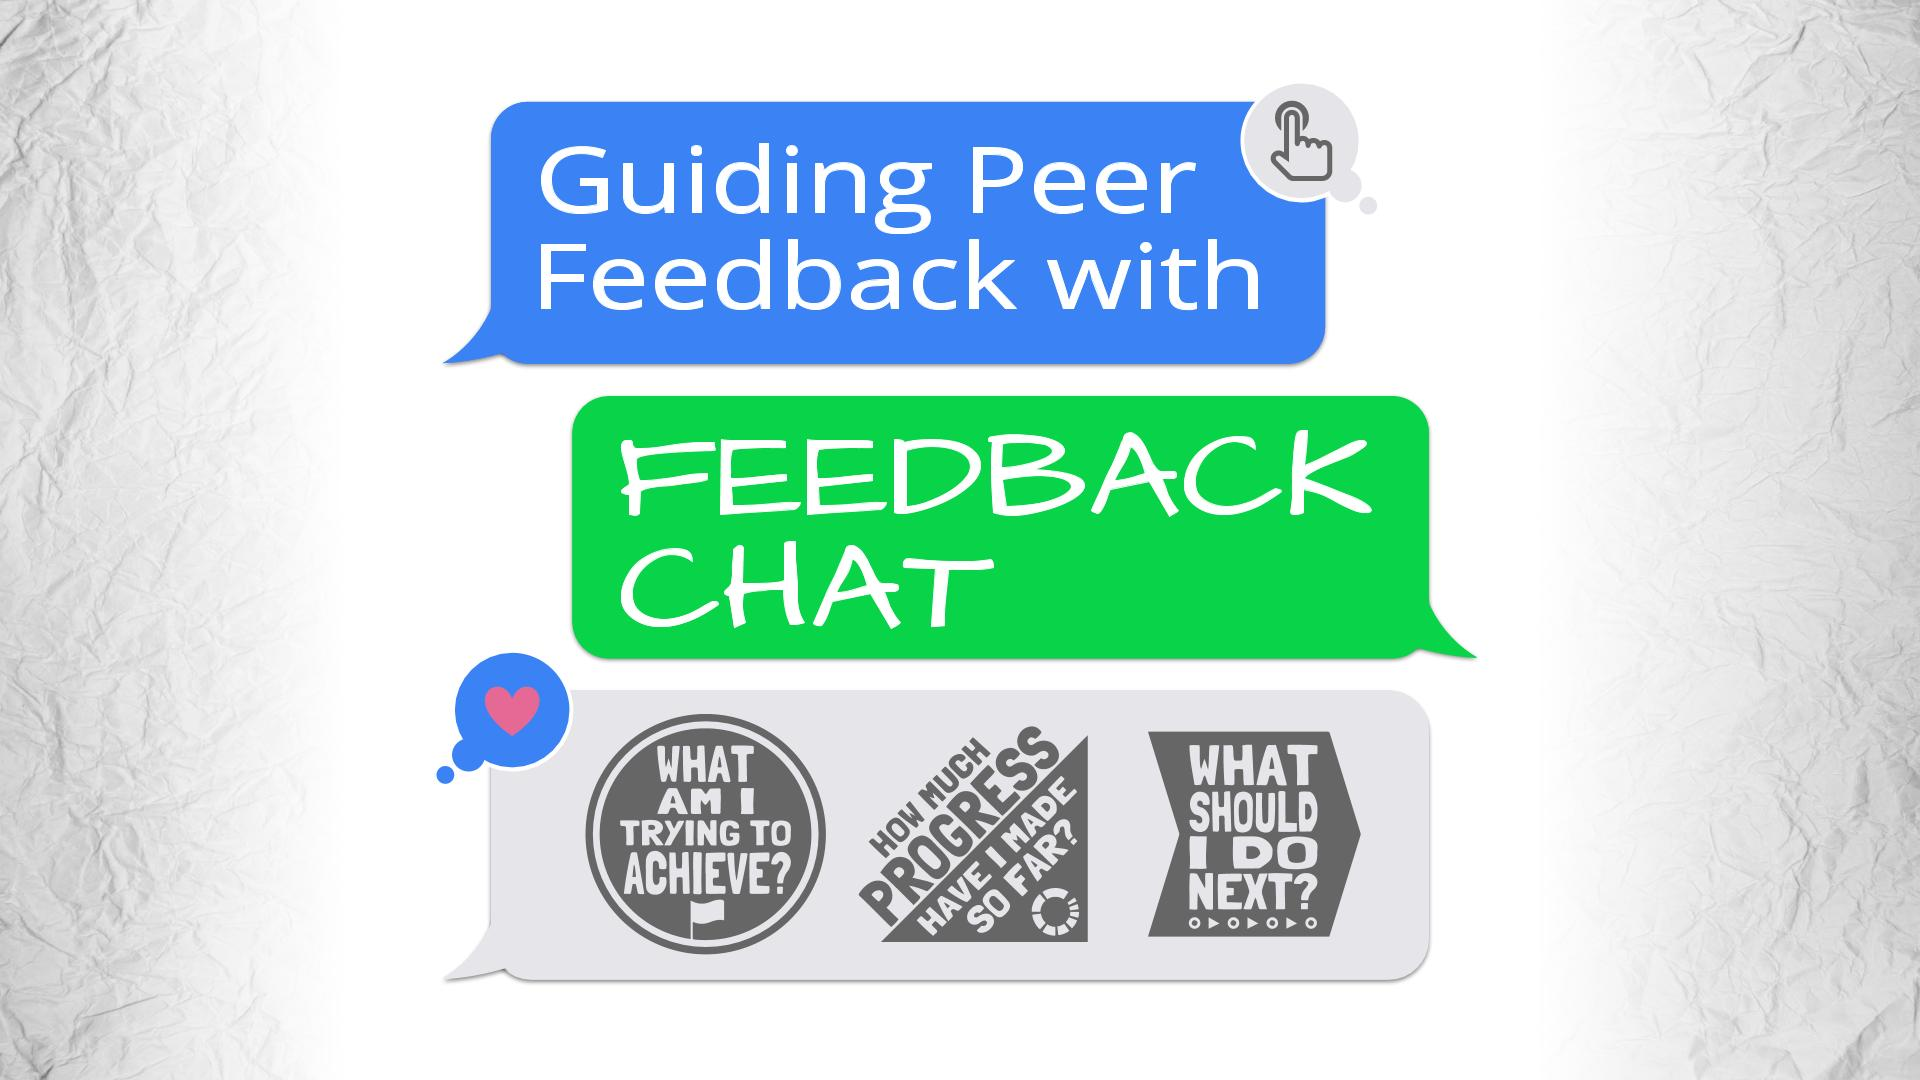 Guiding Peer Feedback with Feedback Chat